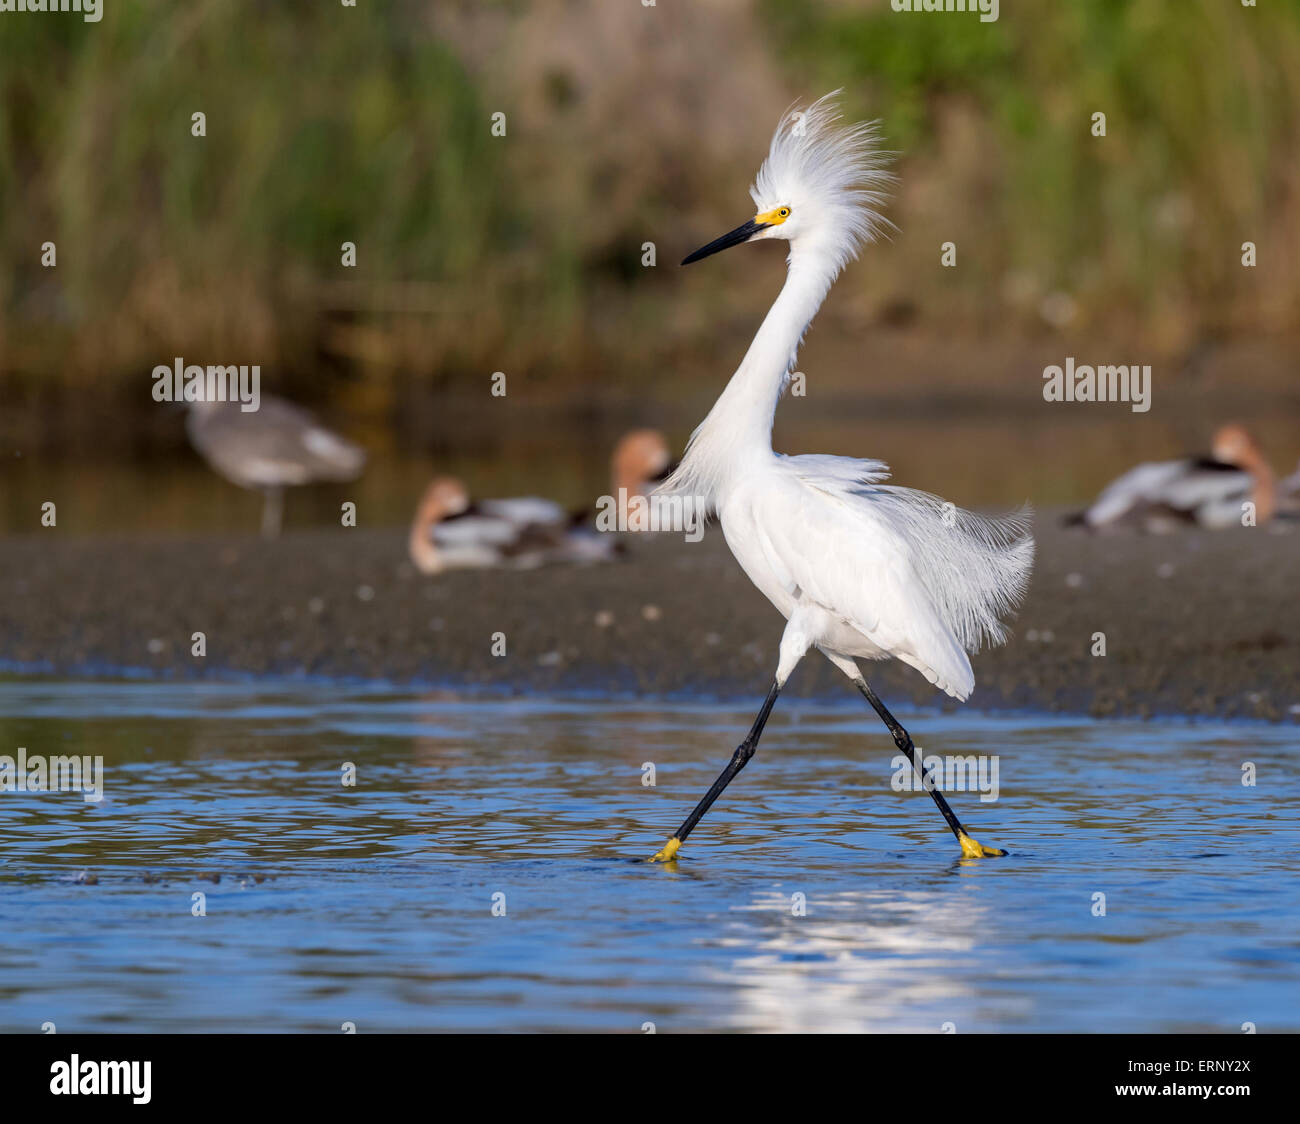 Snowy egret (Egretta thula) in breeding plumage wading in shallow water of tidal marsh, Galveston, Texas, USA. - Stock Image